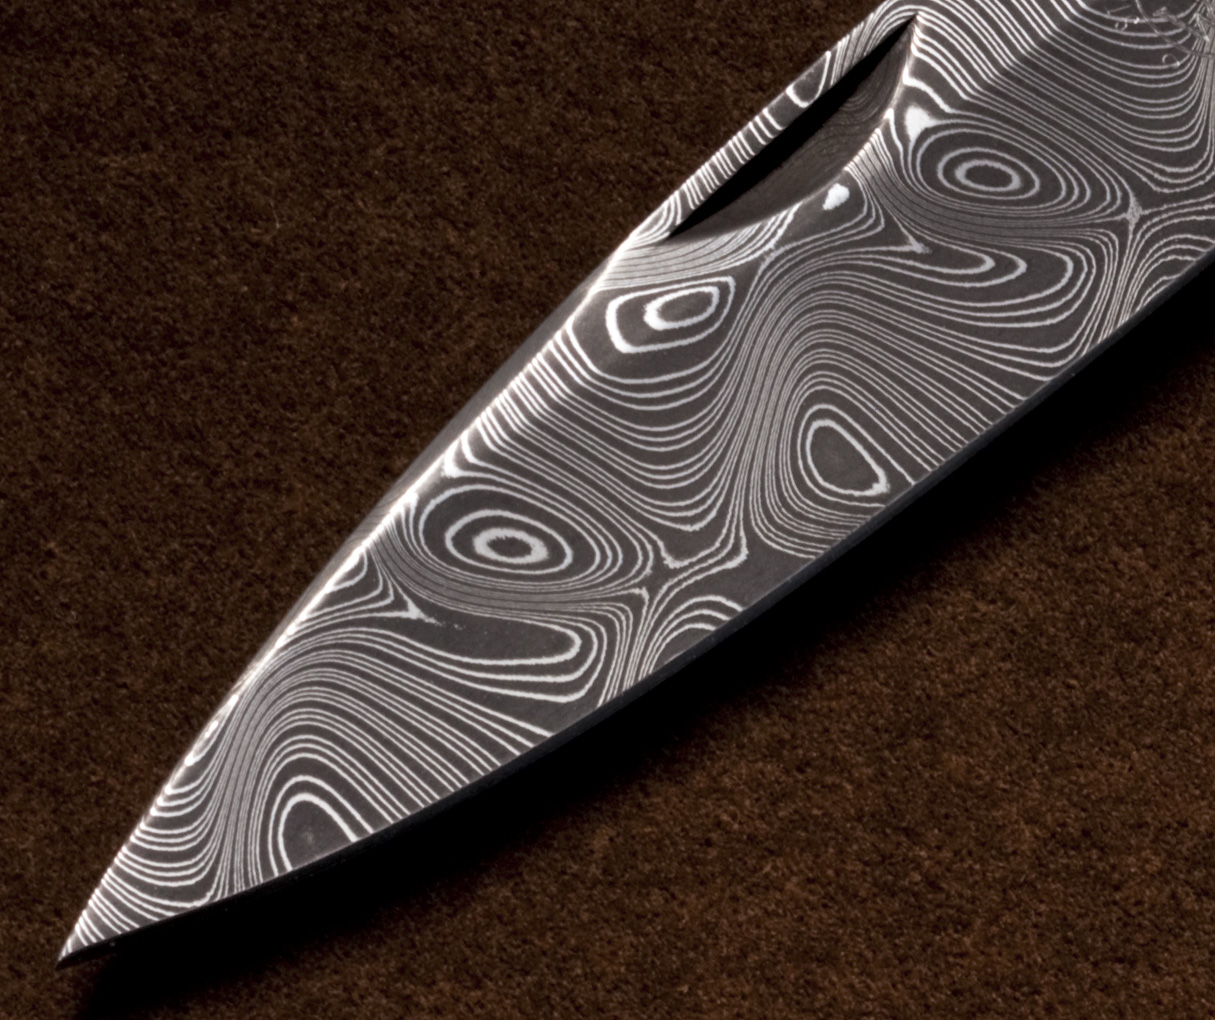 Damascus Steel Care Guide